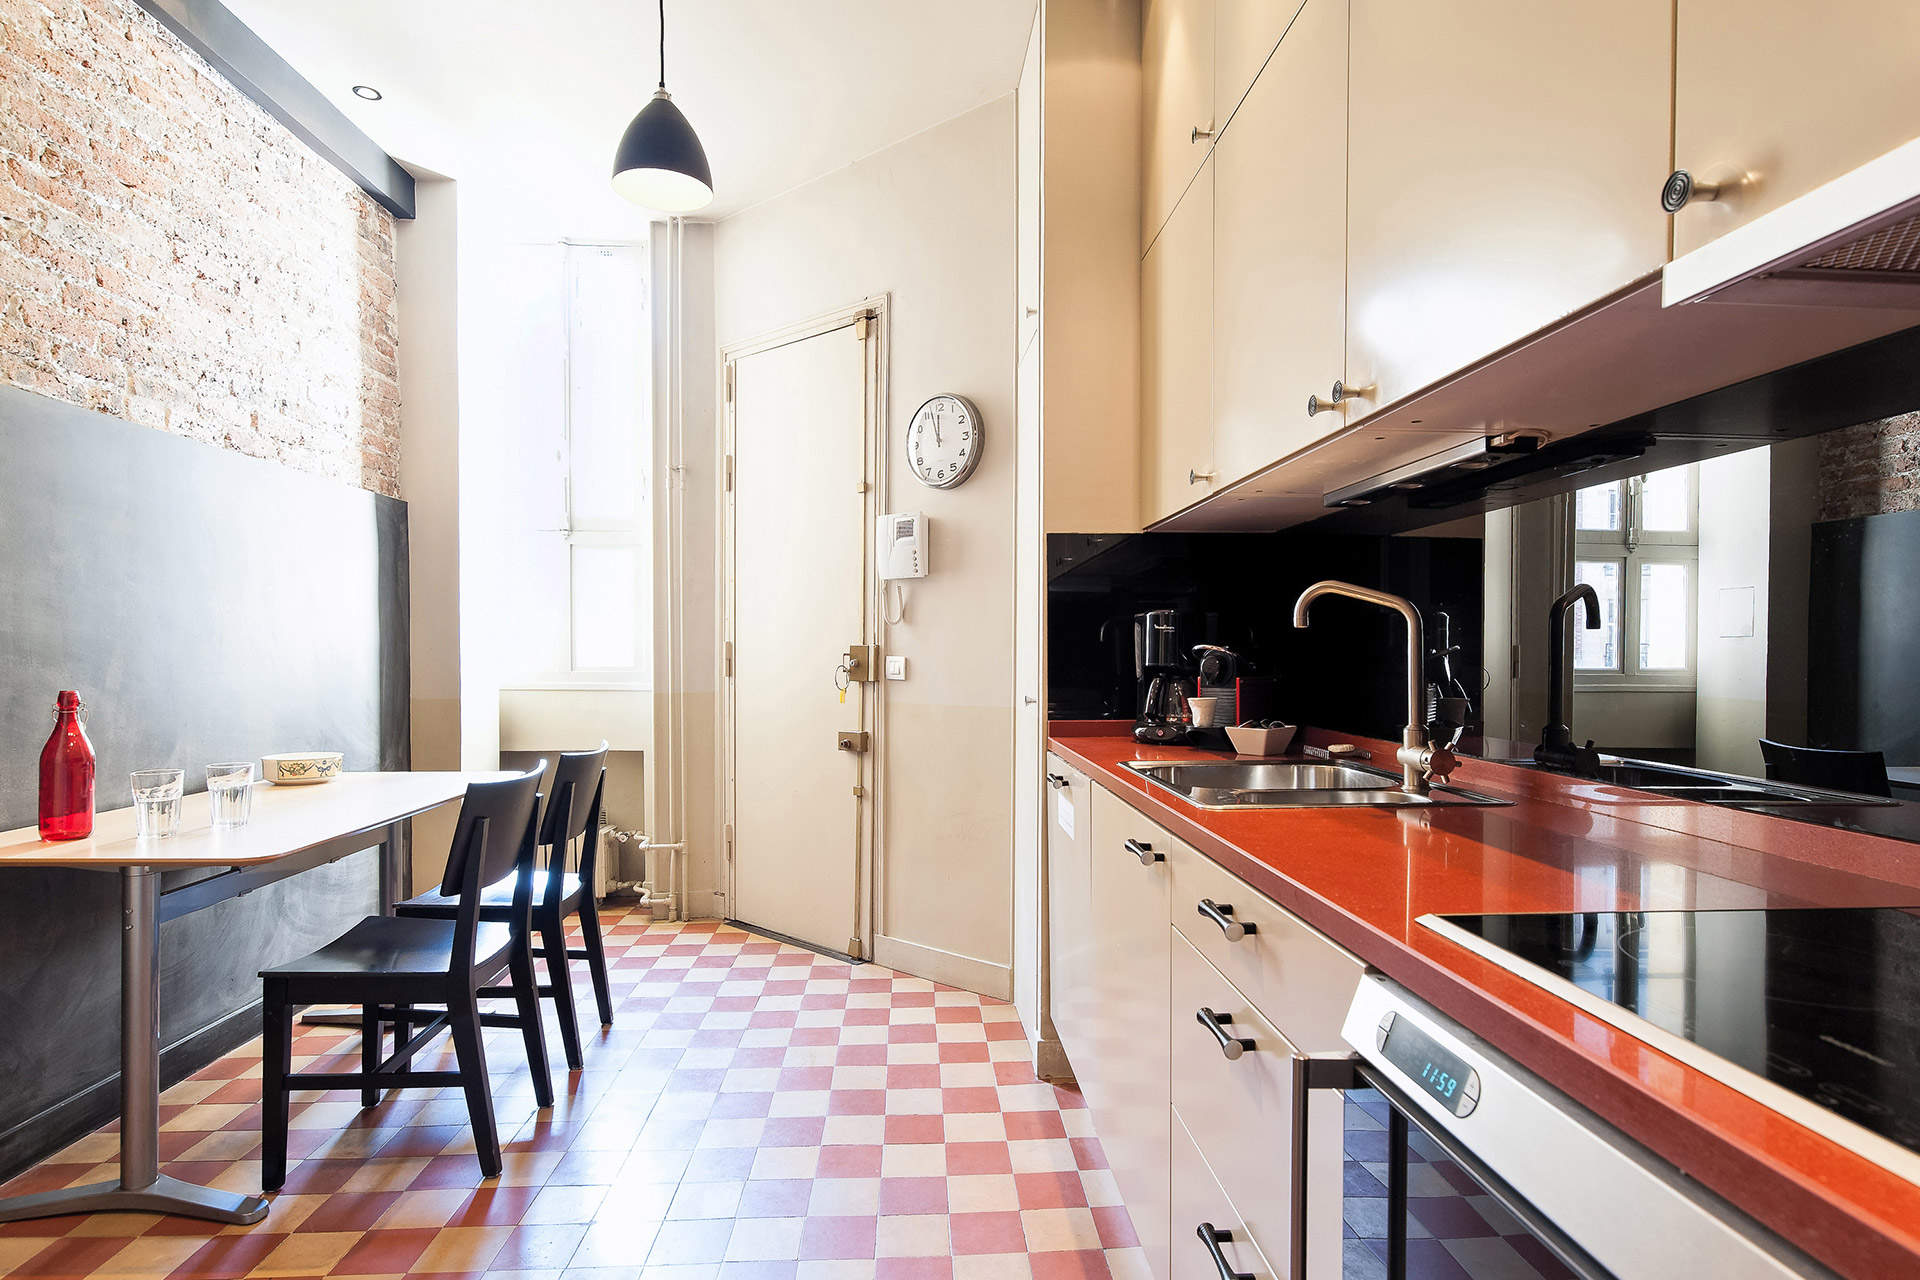 The eat-in kitchen is perfect for families at the Mâcon vacation rental offered by Paris Perfect